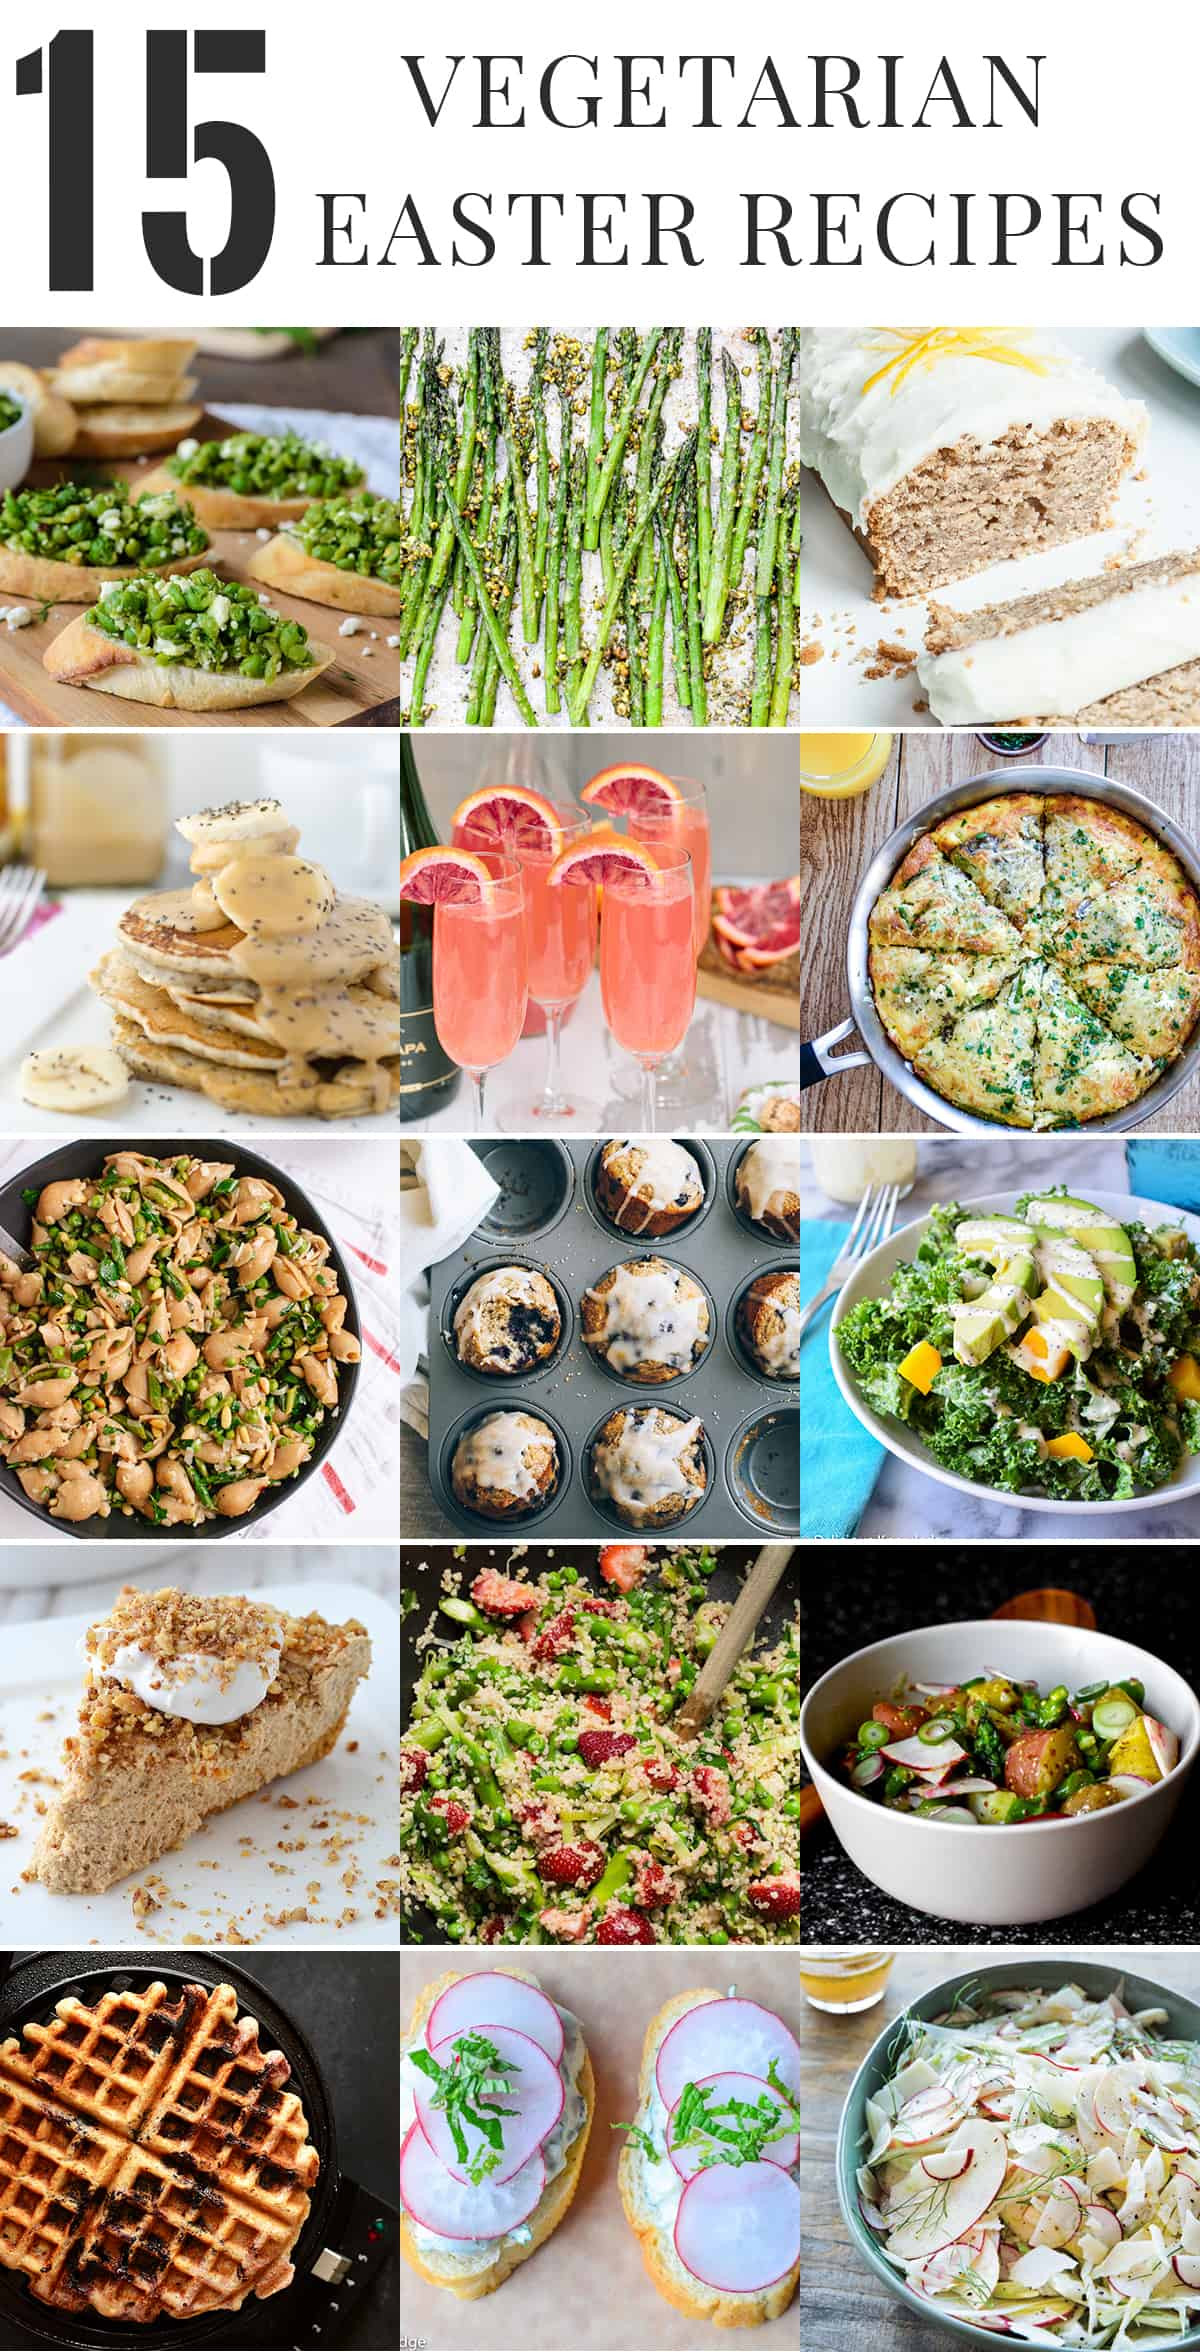 Vegetarian Easter Dinner  Healthy Ve arian Easter Recipes Delish Knowledge